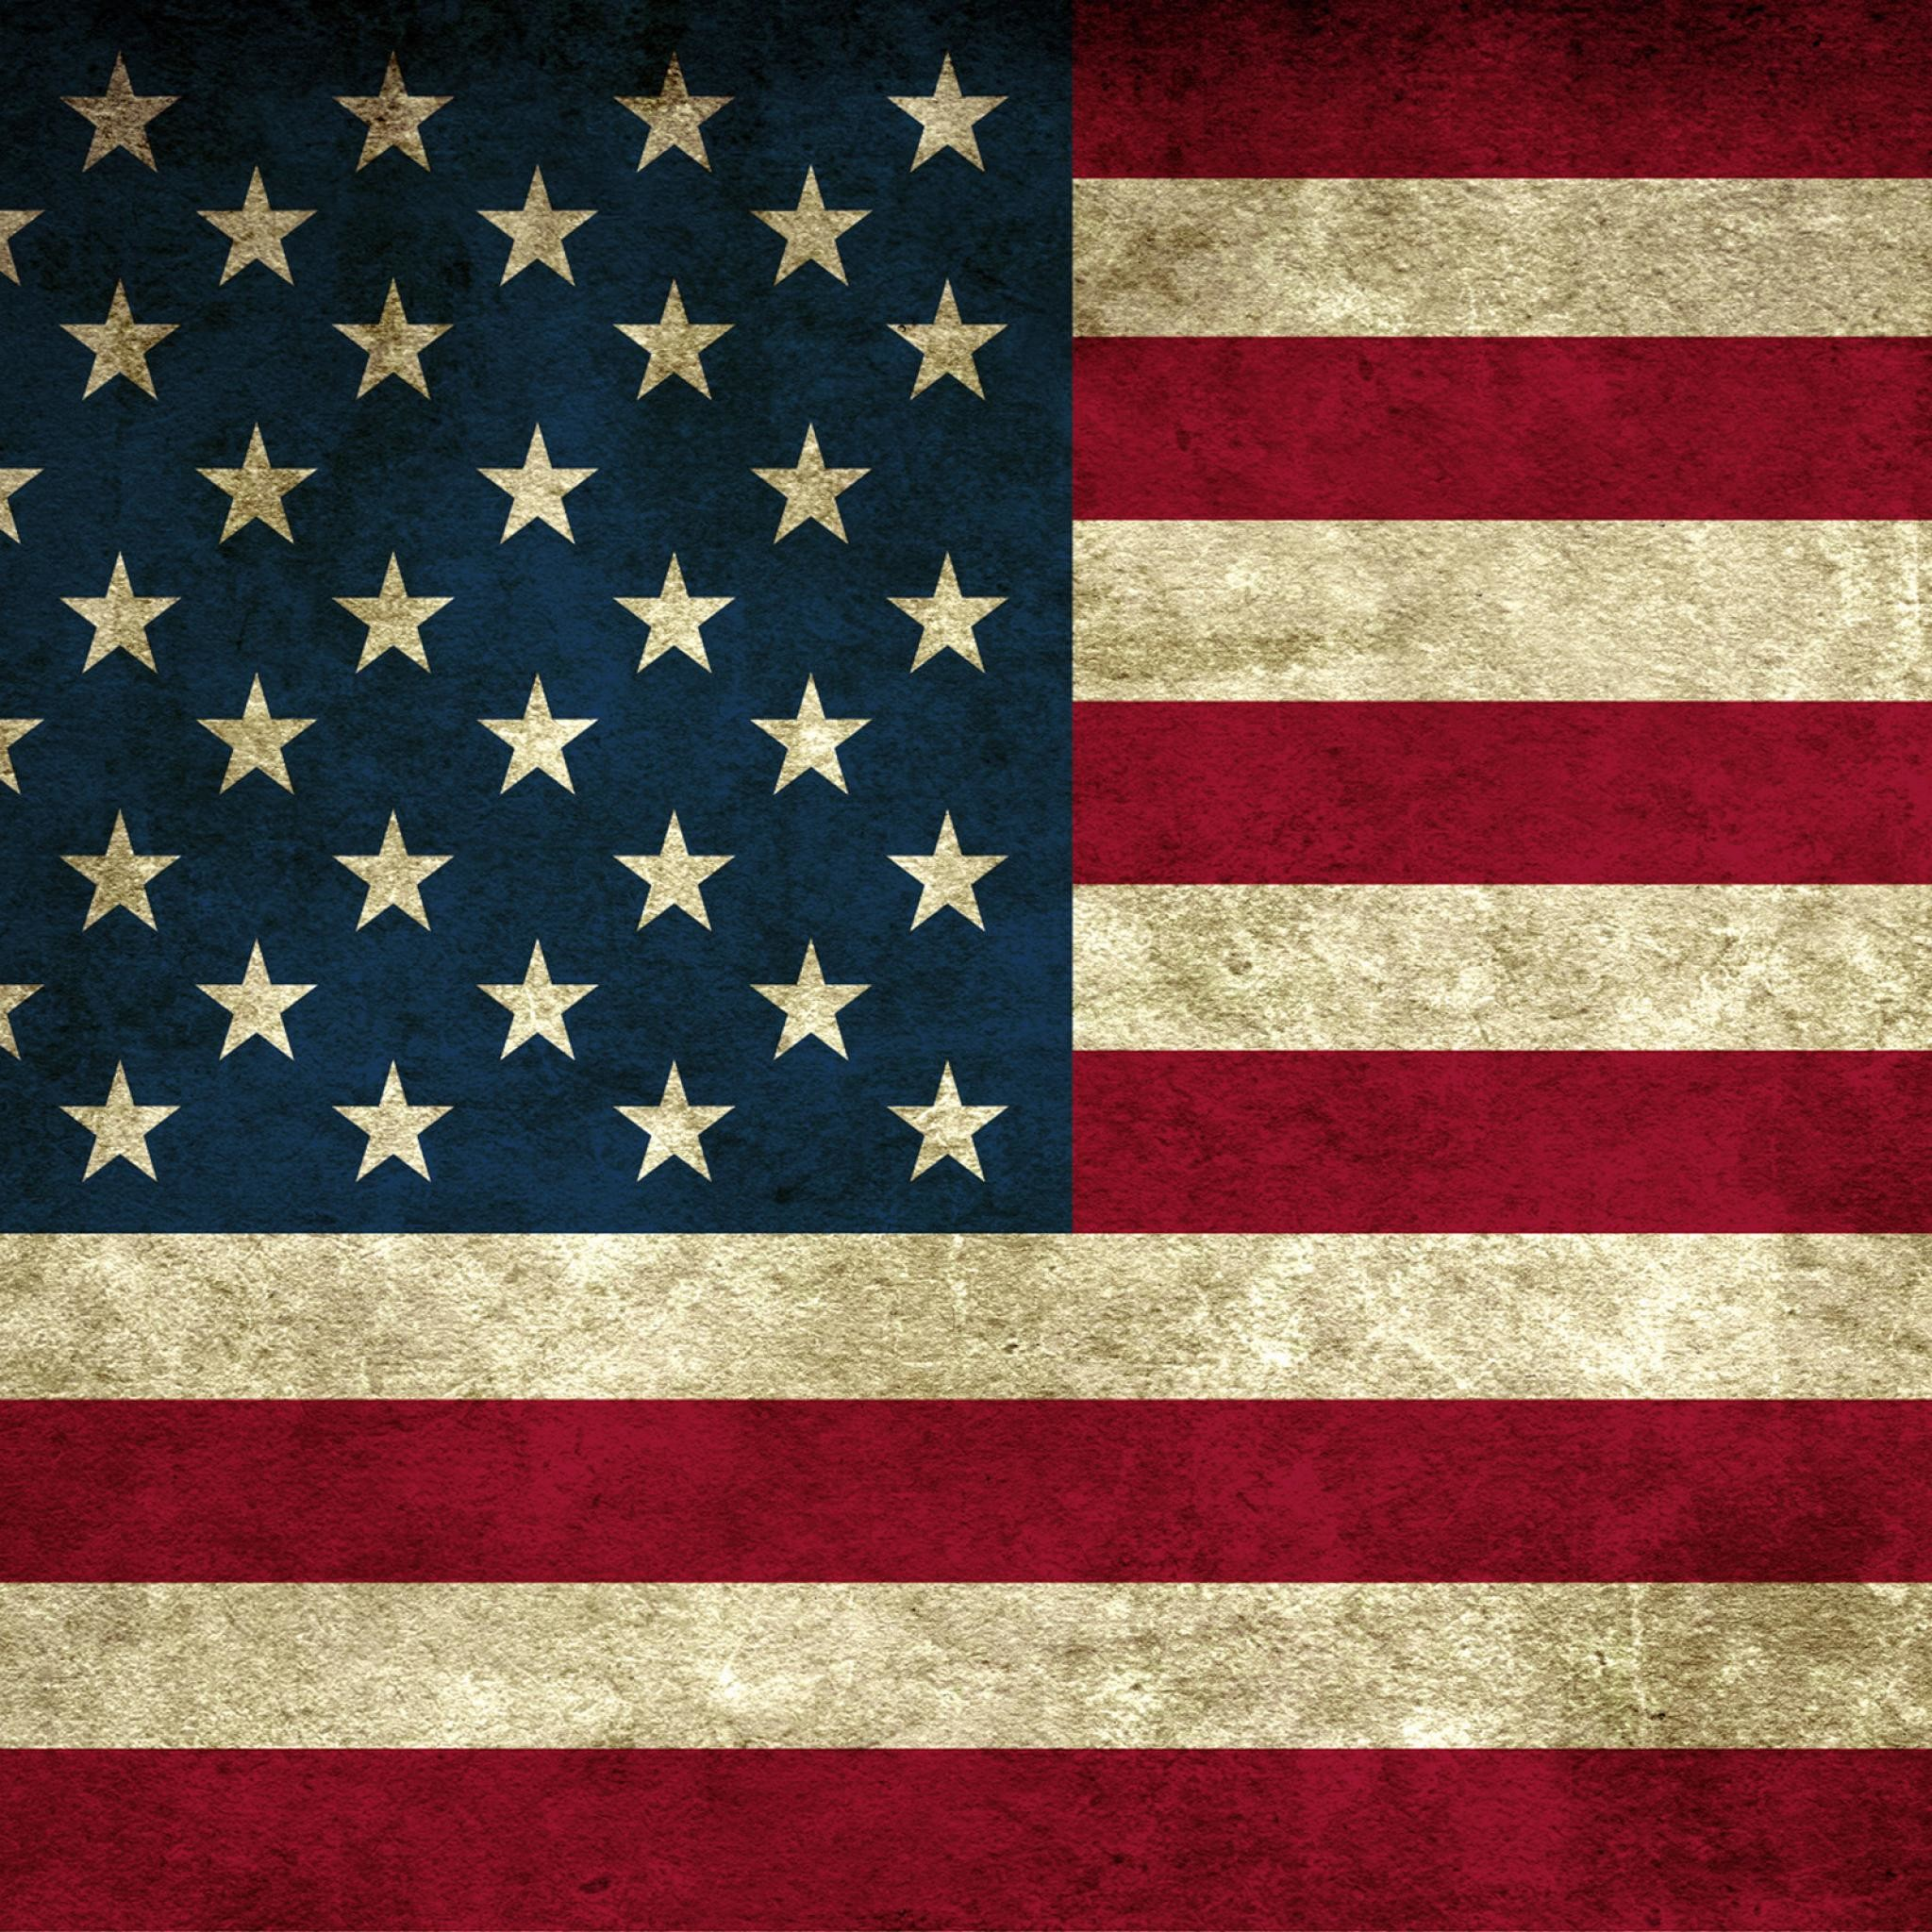 Flag HD Wallpapers for Desktop, iPhone, iPad, and Android